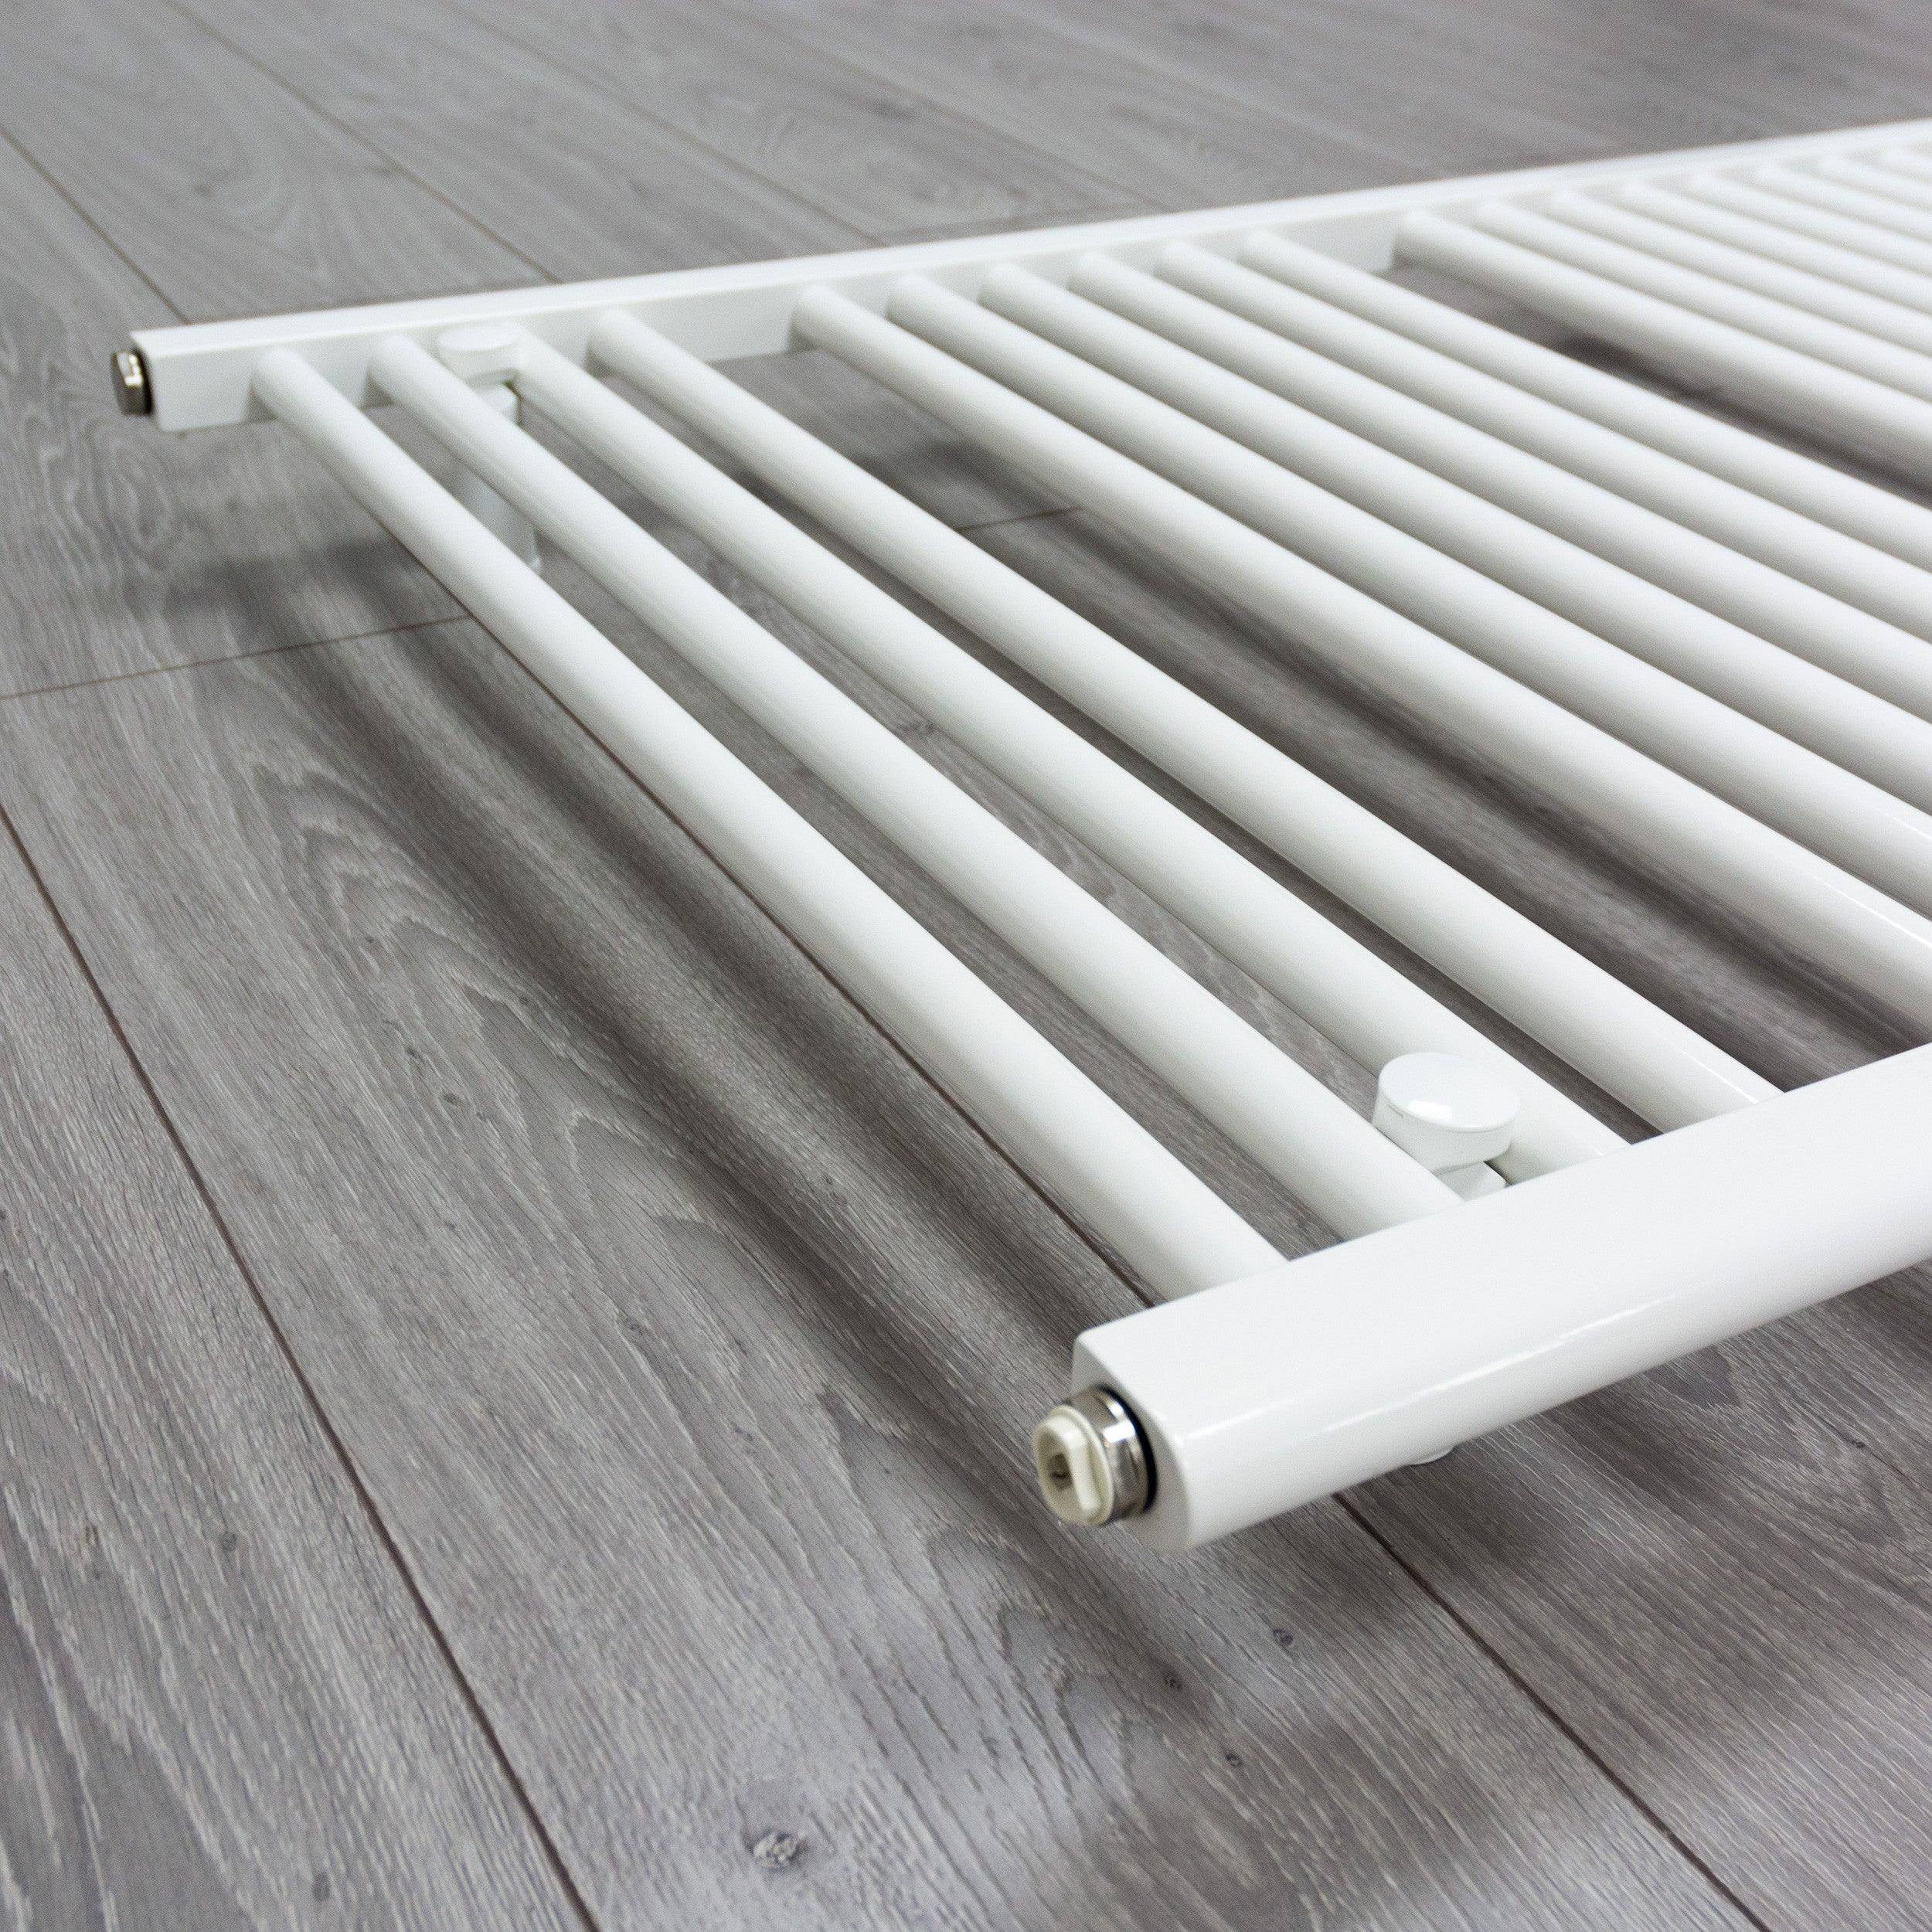 700mm x 1500mm White Heated Towel Rail Radiator Close Up Image